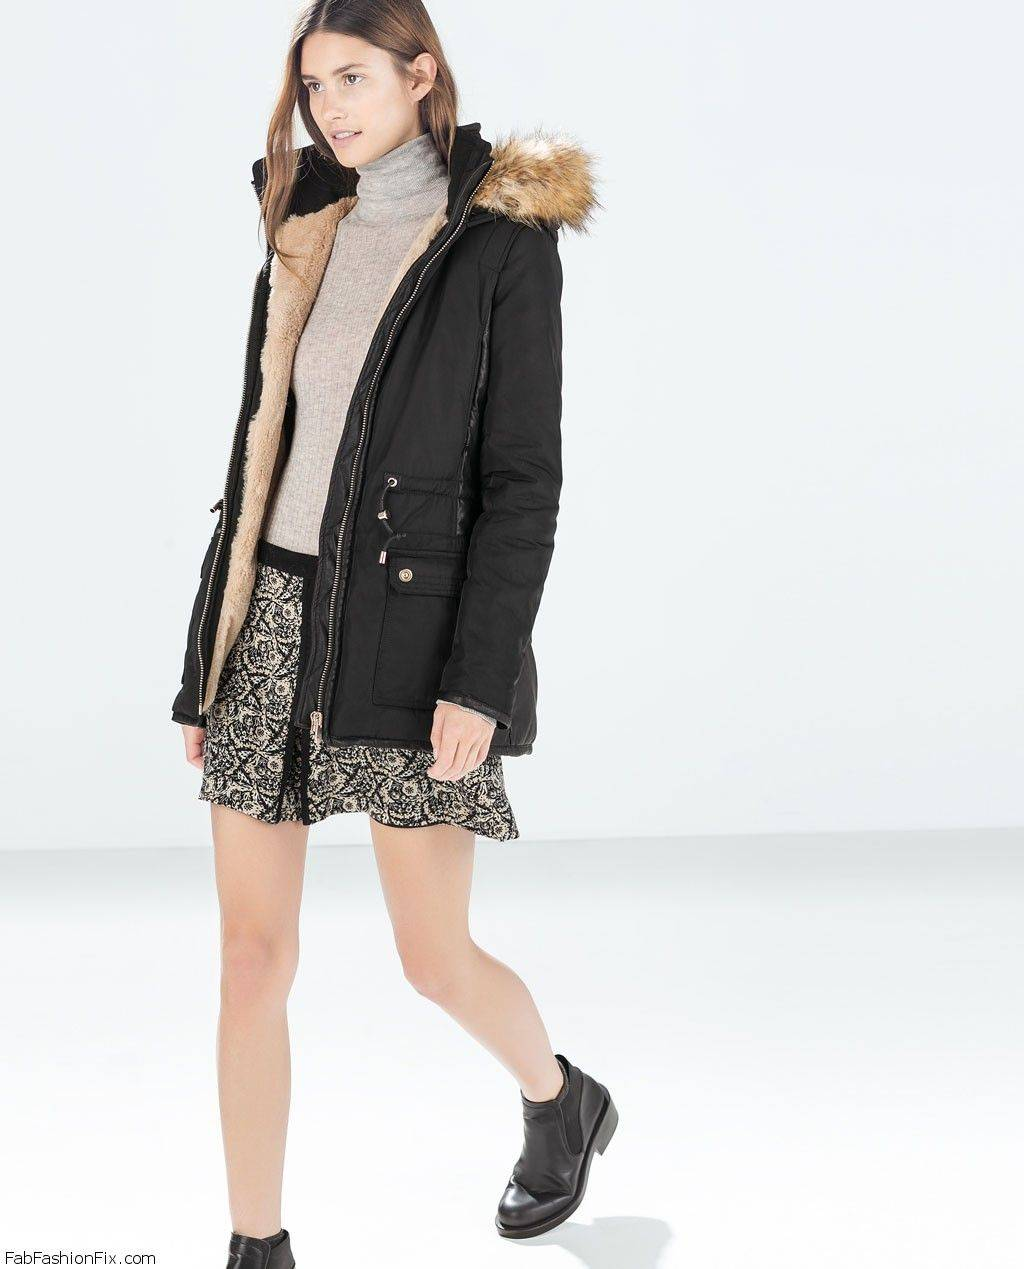 ZARA coats & jackets for fall/winter 2014 | Fab Fashion Fix